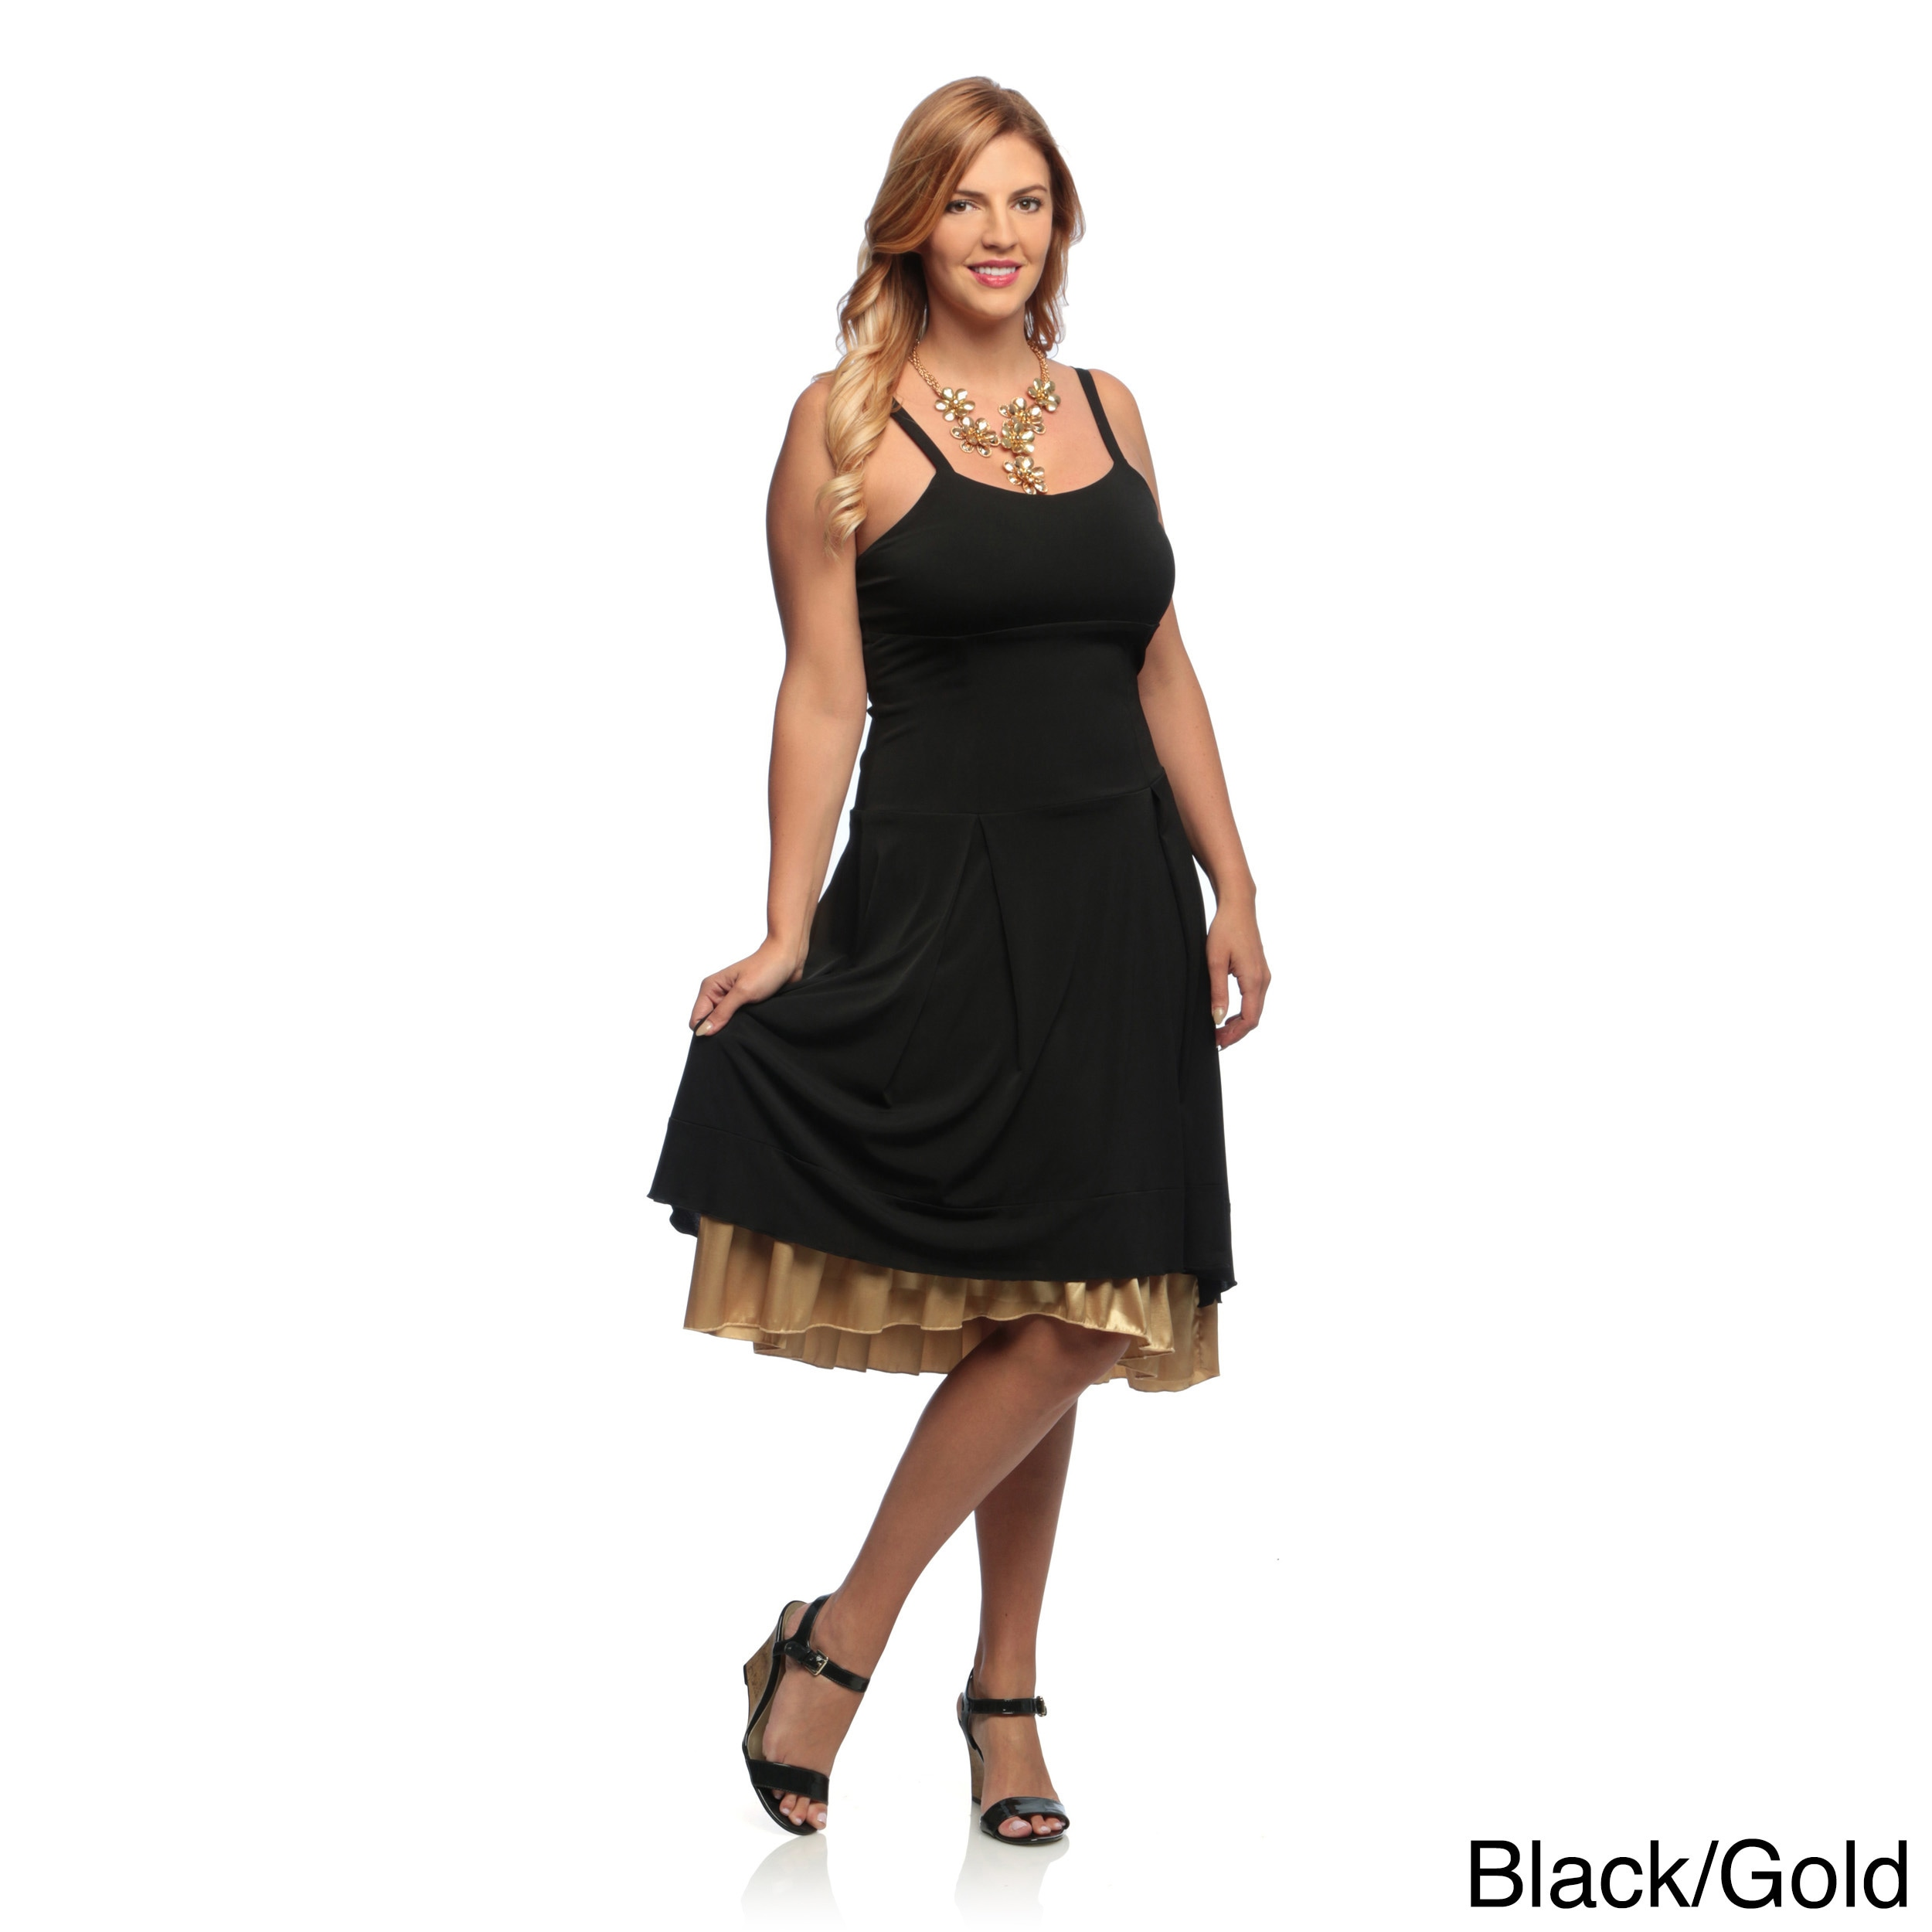 Evanese Women\'s Plus Size Double Layered Cocktail Dress   eBay